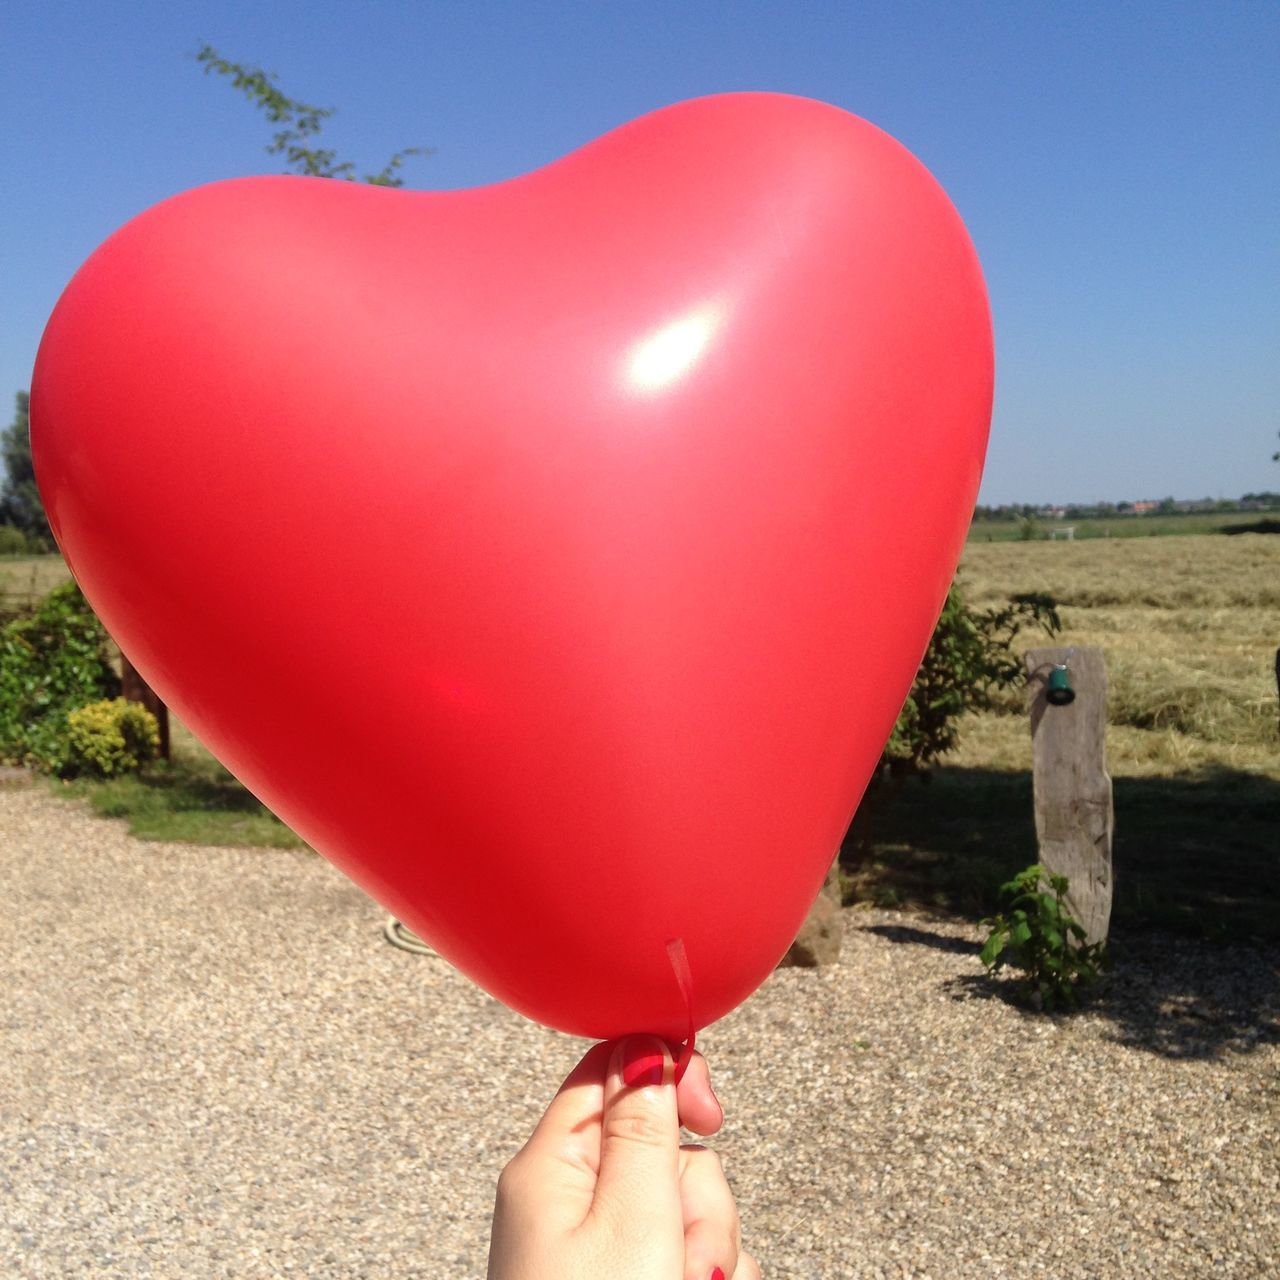 red ballon, wedding Animal Themes Balloon Balloons Close-up Day Happy Heart Heart Shape Holding Human Body Part Human Hand Human Leg Leisure Activity Lifestyles Low Section Nature One Person Outdoors Real People Red Sky Tree Wedding Wedding Day Wedding Photography